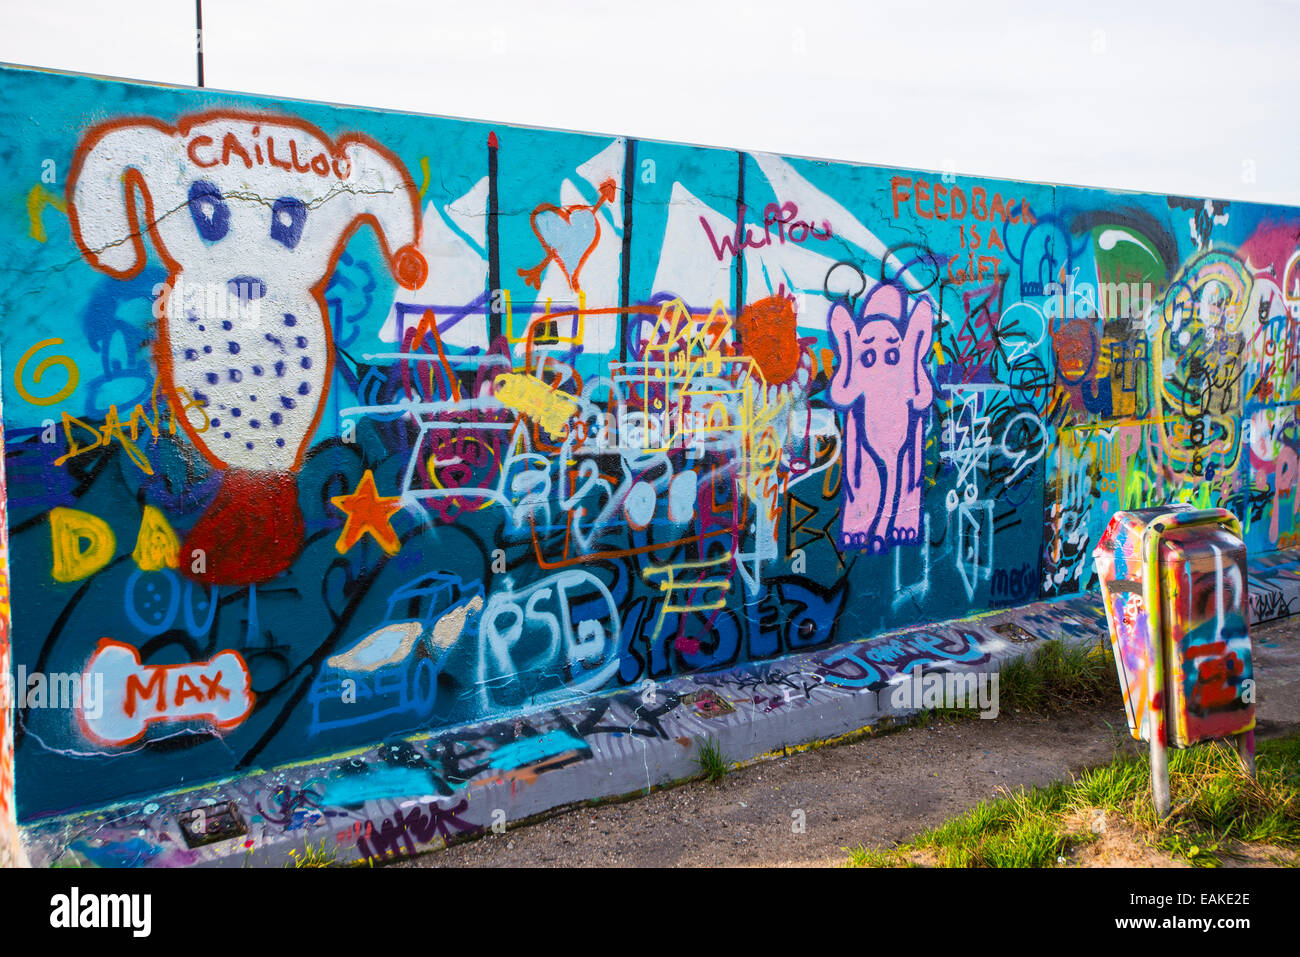 Graffiti wall at skate ramp on java eiland in amsterdam harbor graffiti wall at skate ramp on java eiland in amsterdam harbor netherlands altavistaventures Images